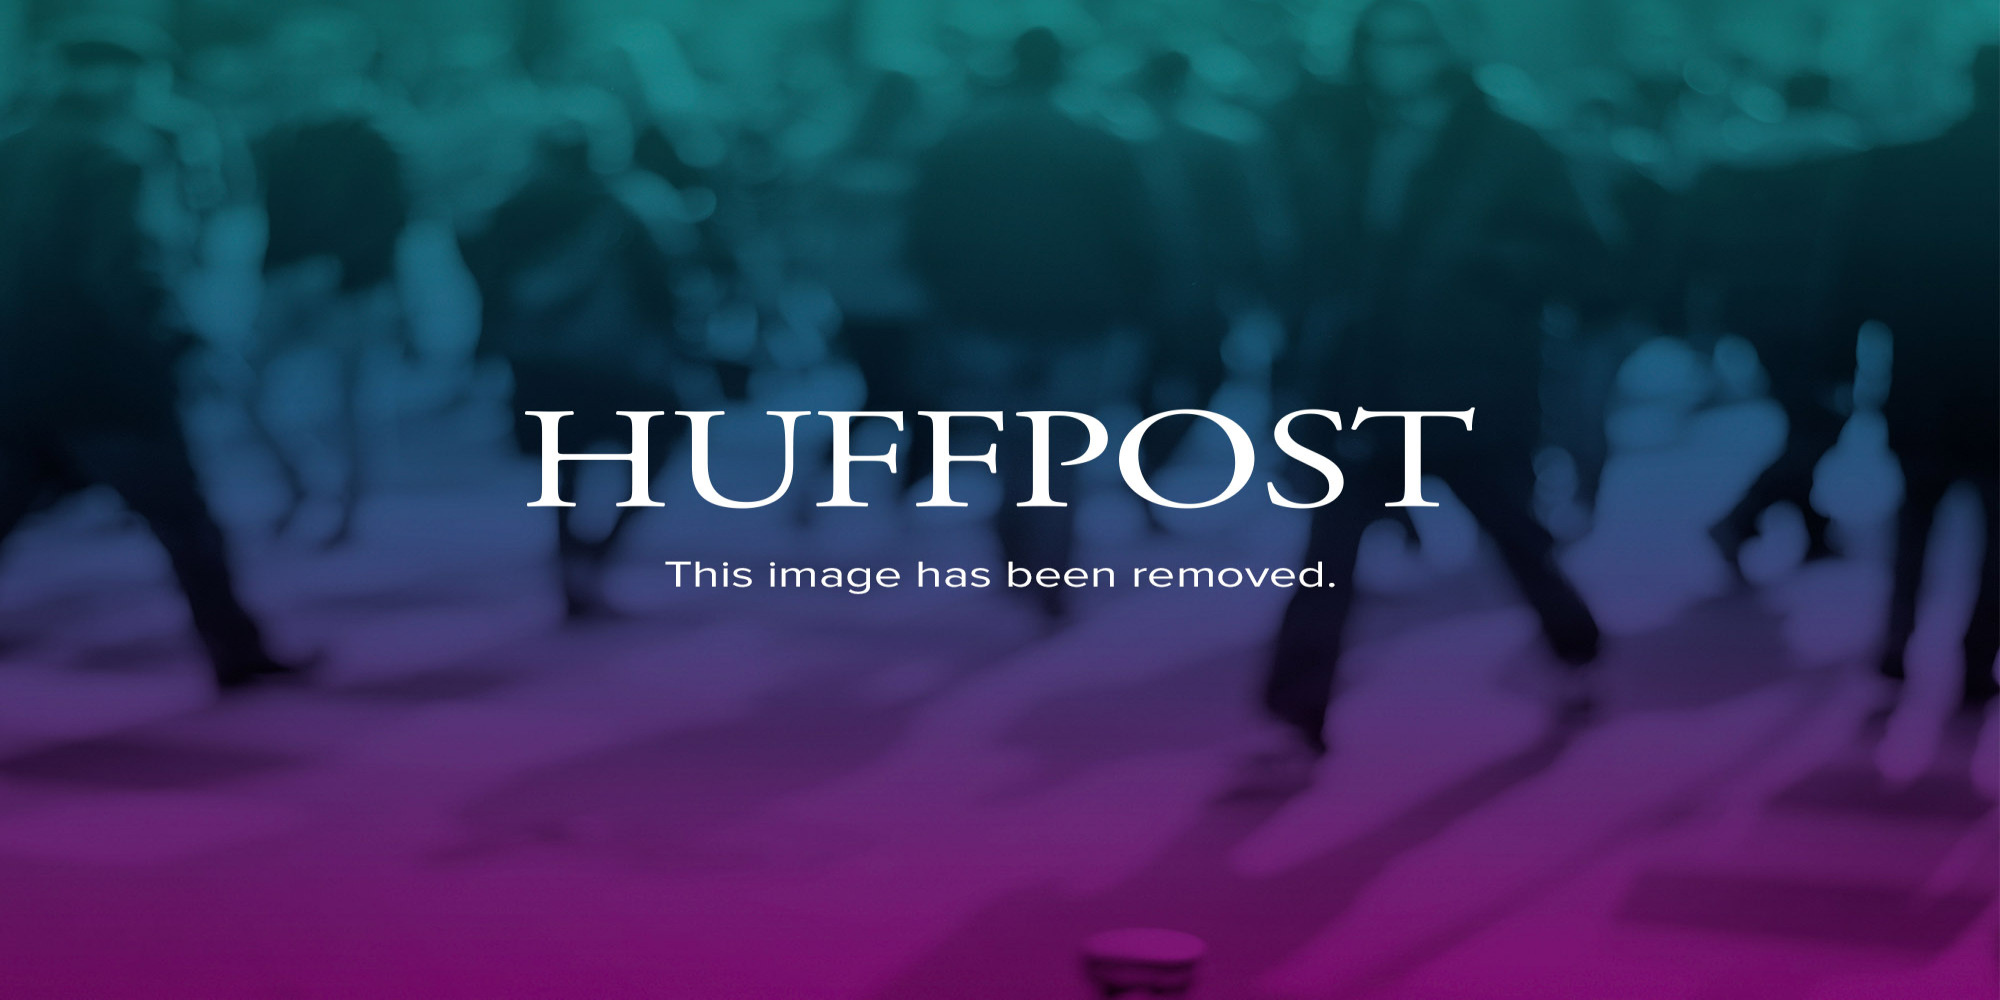 http://i.huffpost.com/gen/1816901/thumbs/o-POPE-FRANCIS-facebook.jpg